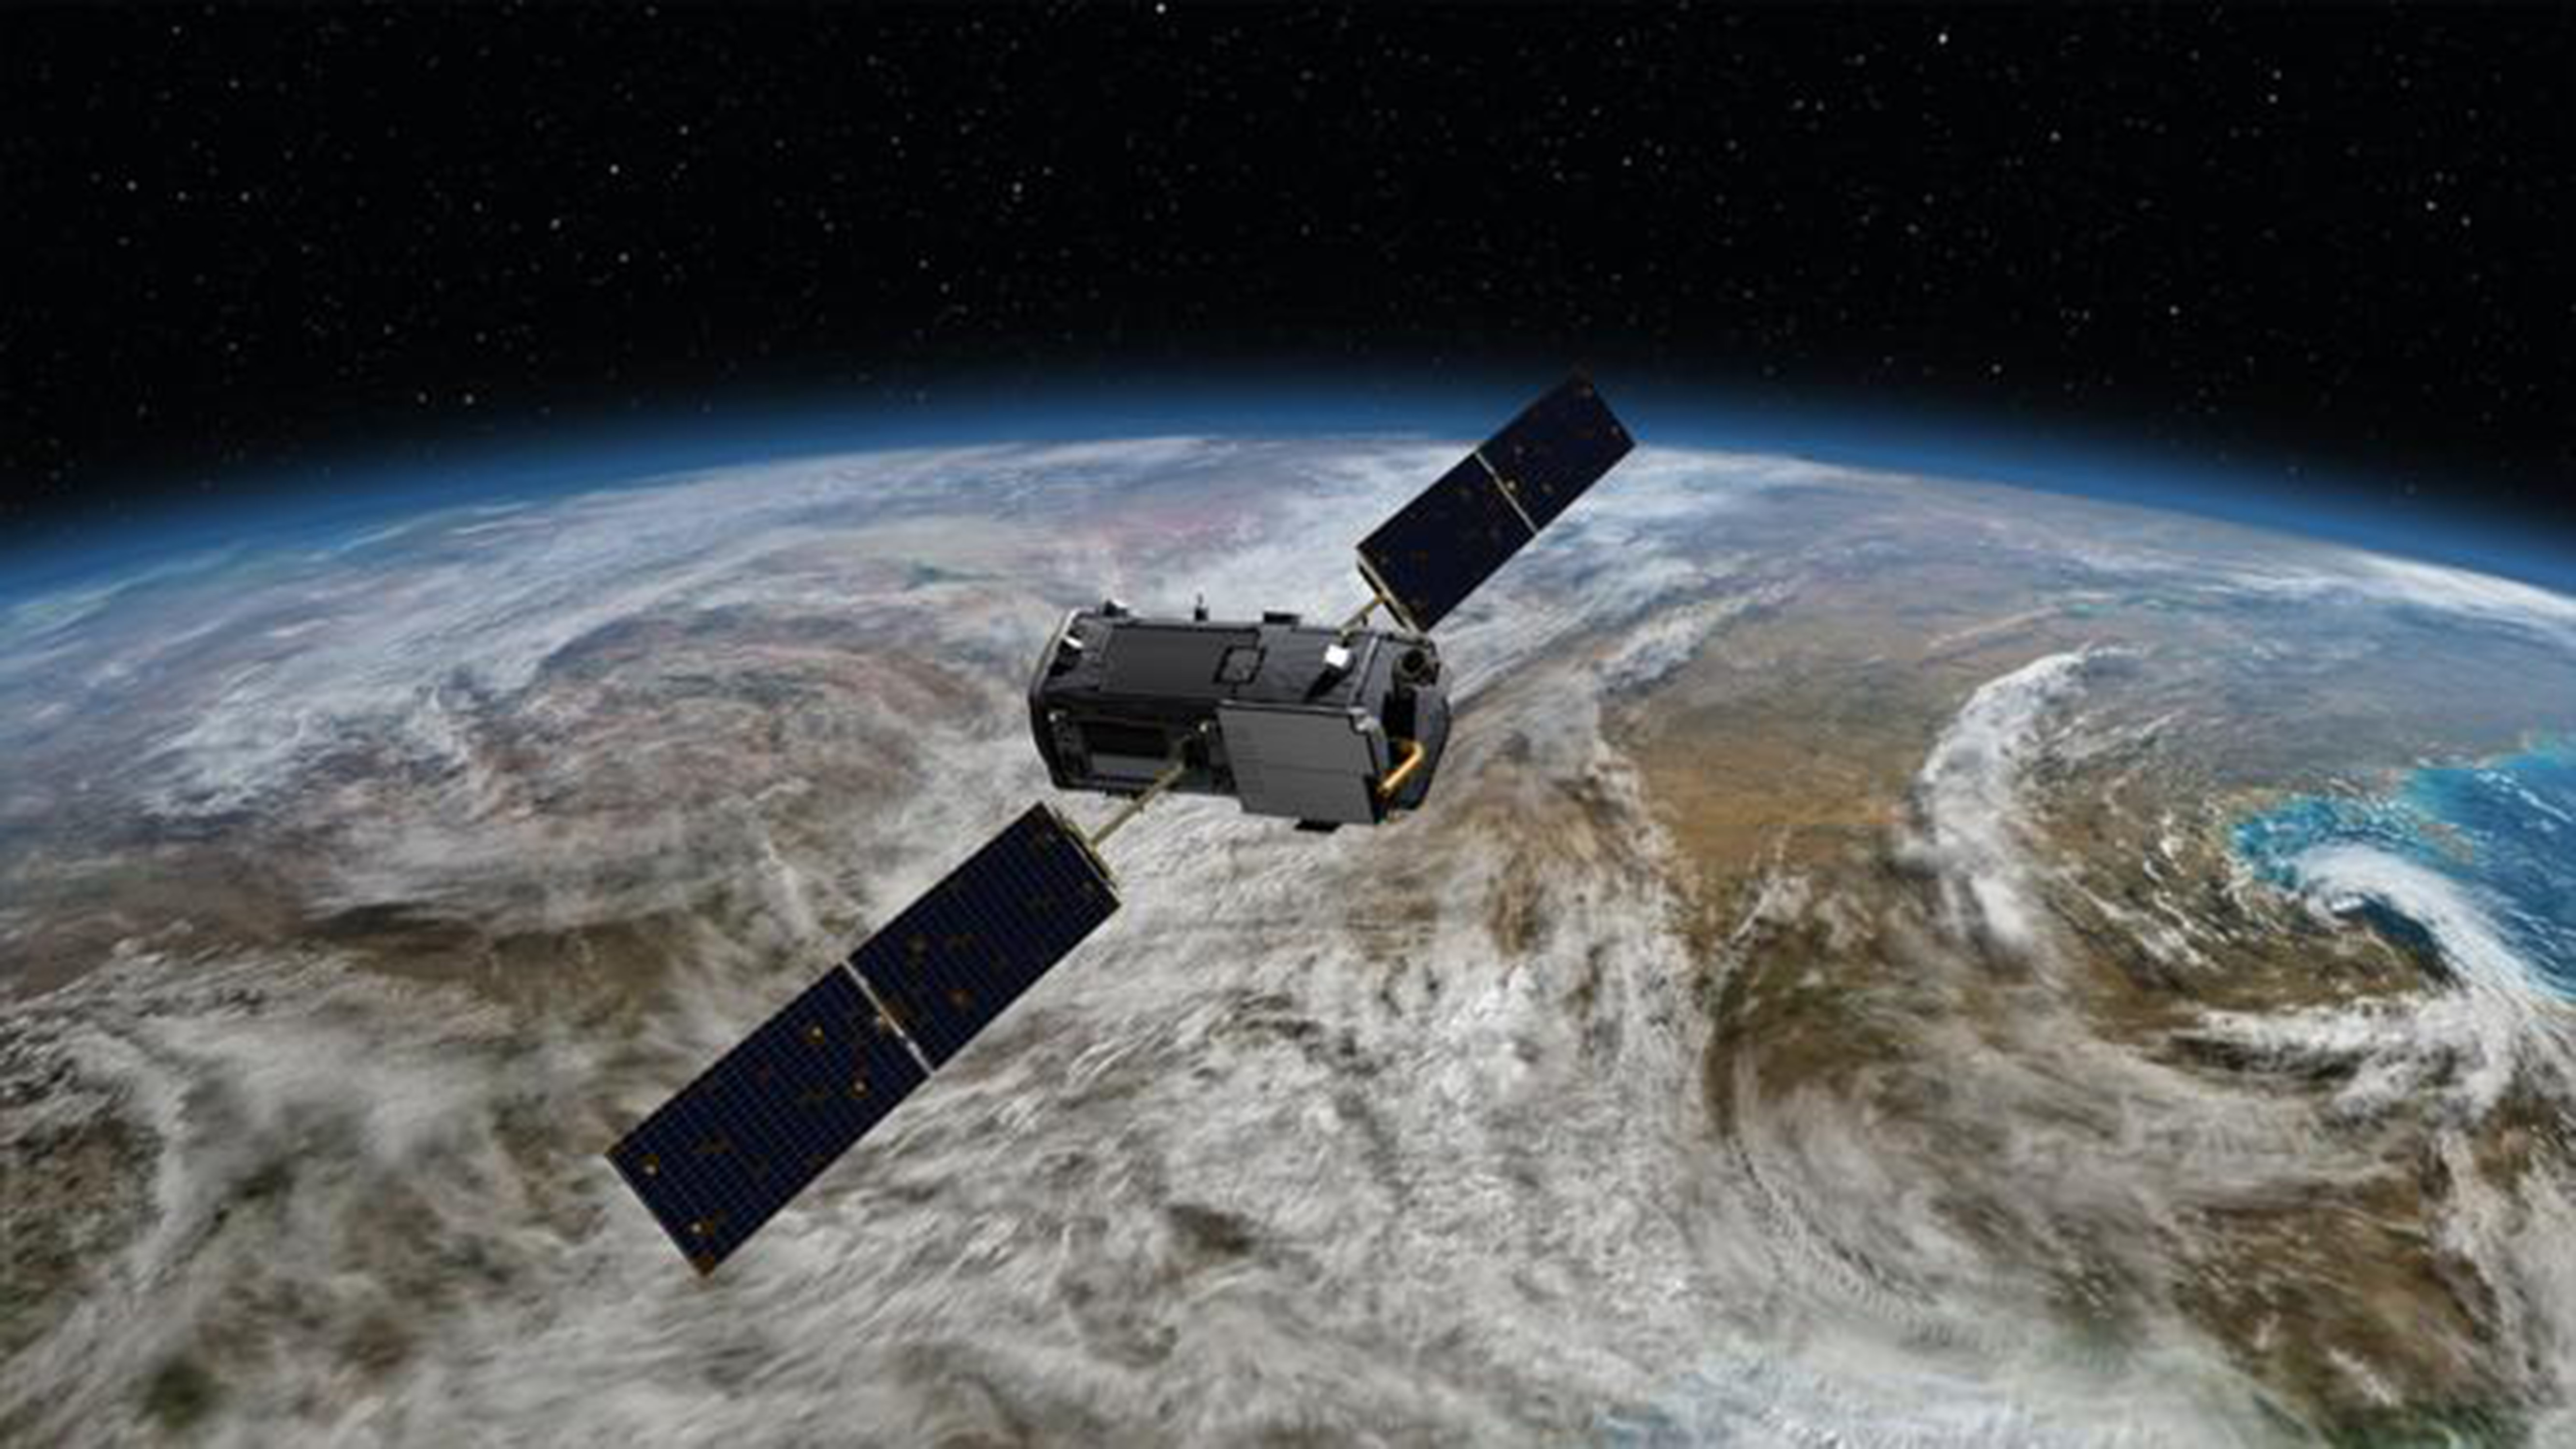 WEB US NEWS SCI-NASA-CARBON LA An illustration of NASA's Orbiting Carbon Observatory-2 satellite at work in Earth's orbit.